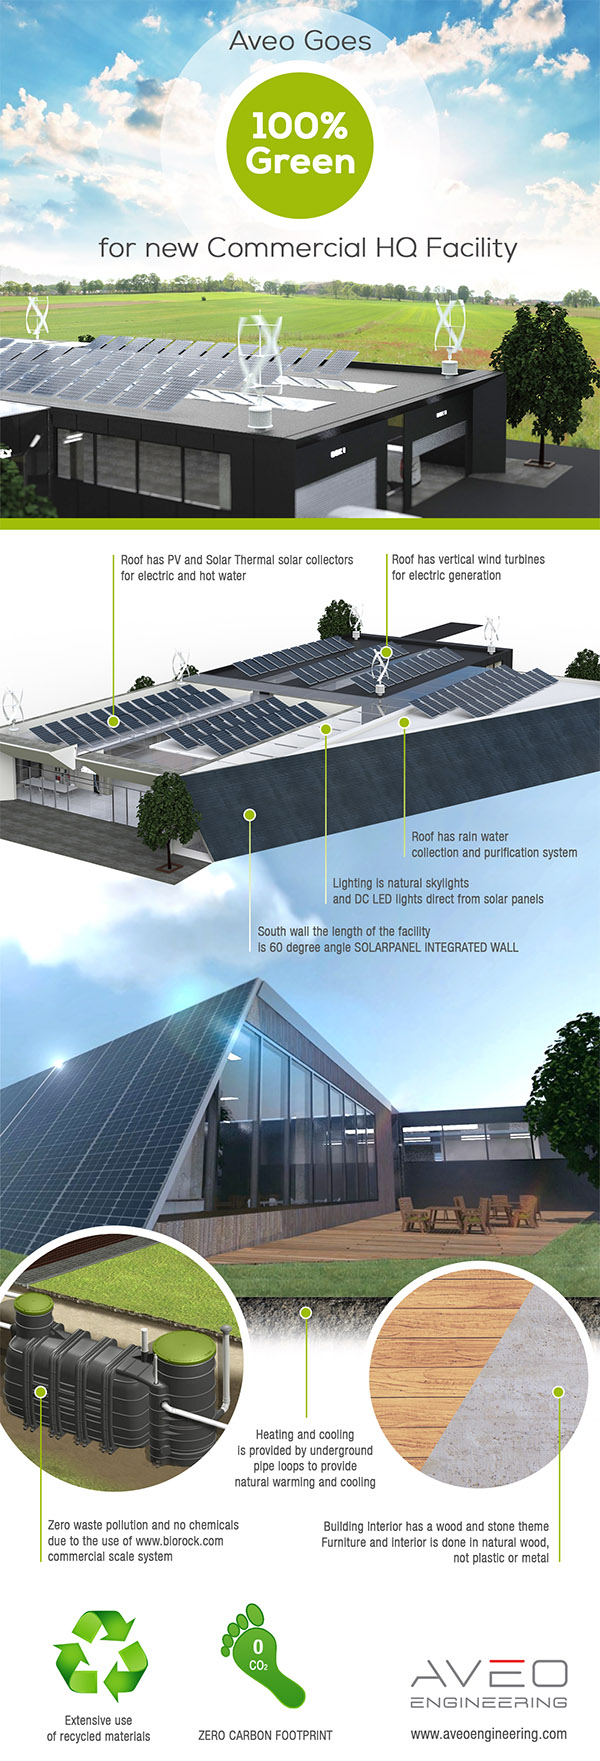 Aveo Goes 100% Green for new Commecrial HQ Facility